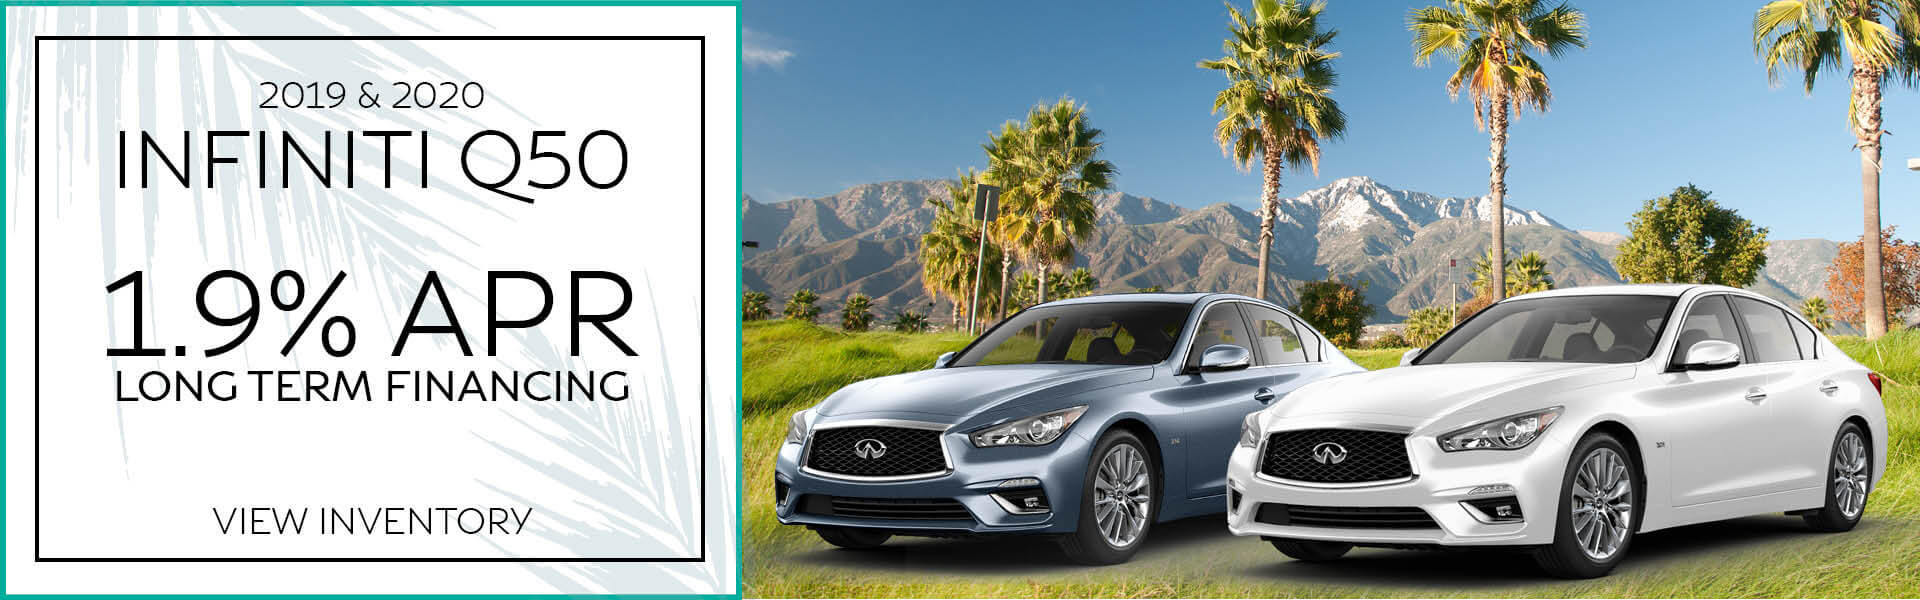 Q50 - 1.9% APR Available